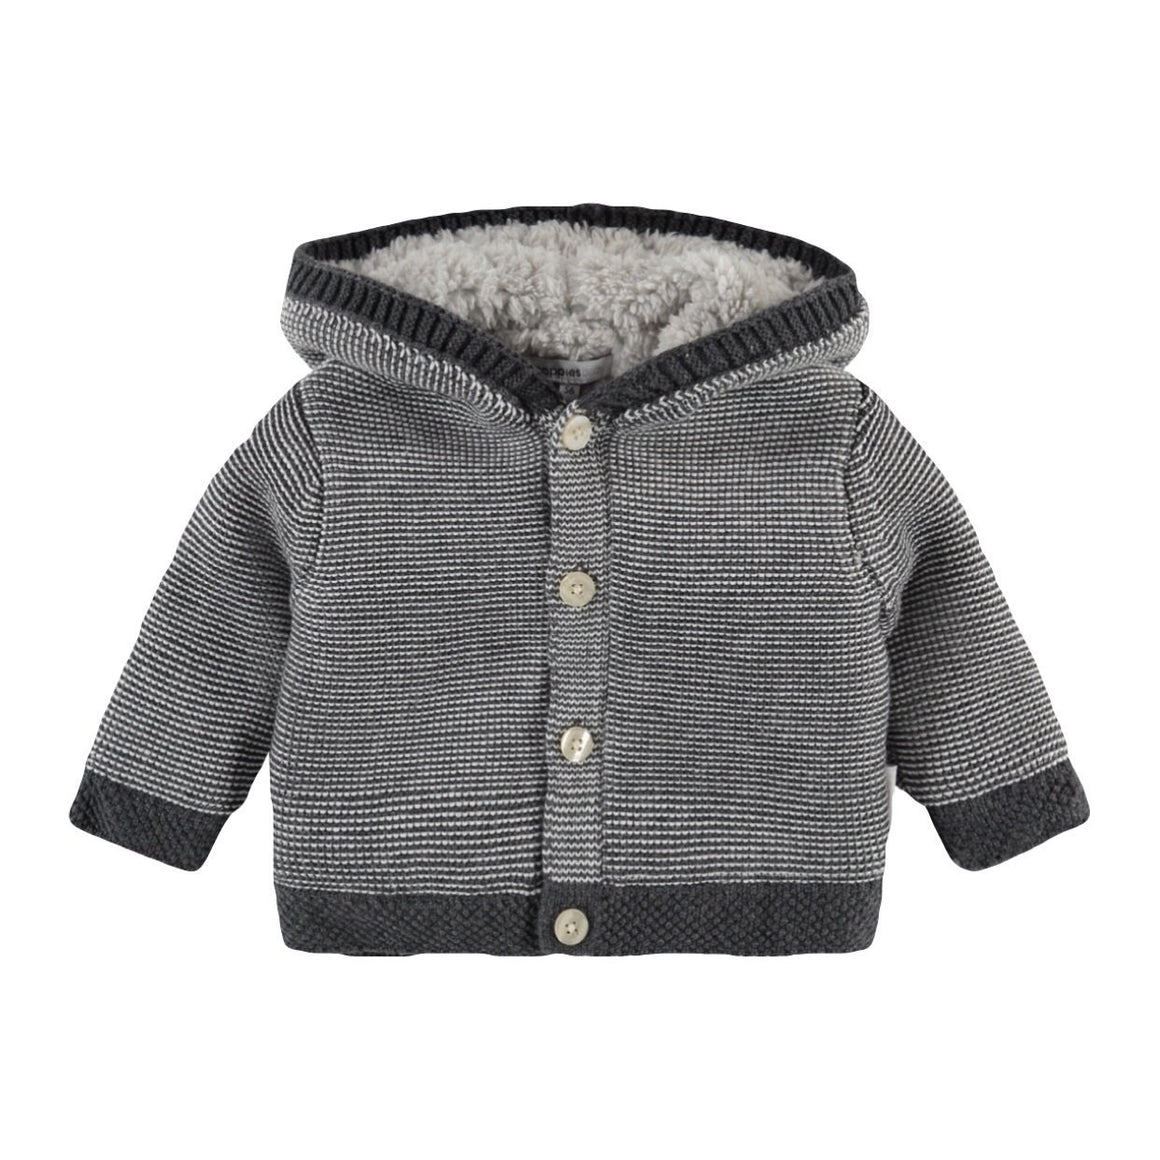 94512 - Noppies - Quartz Unisex Baby Organic Long Sleeve Cardigan - Grey Melange Cardigan Noppies